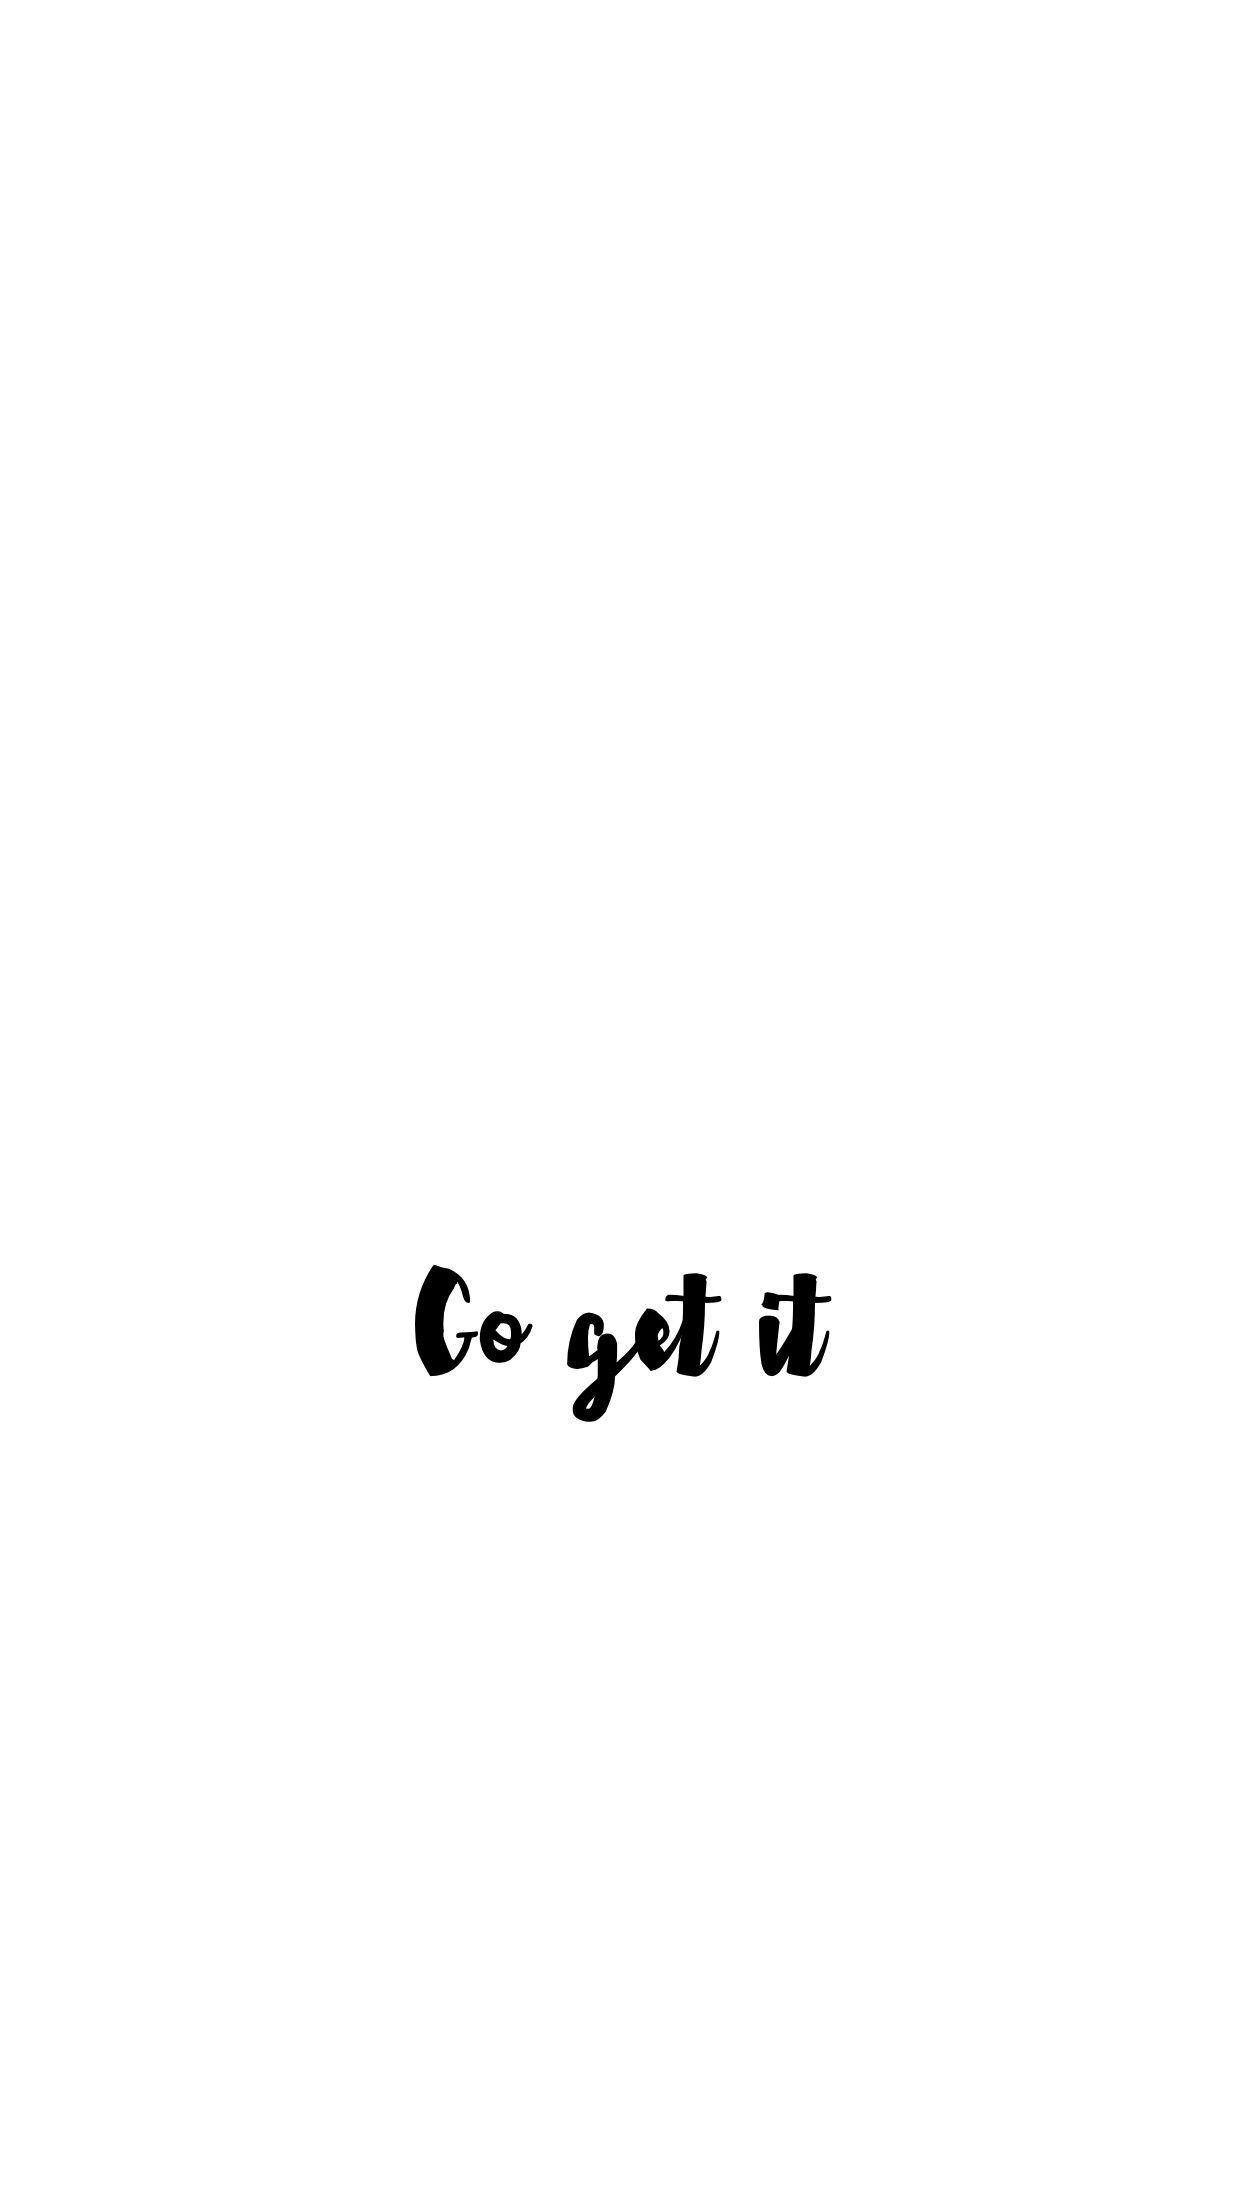 White Quotes Aesthetic Wallpapers Wallpaper Cave